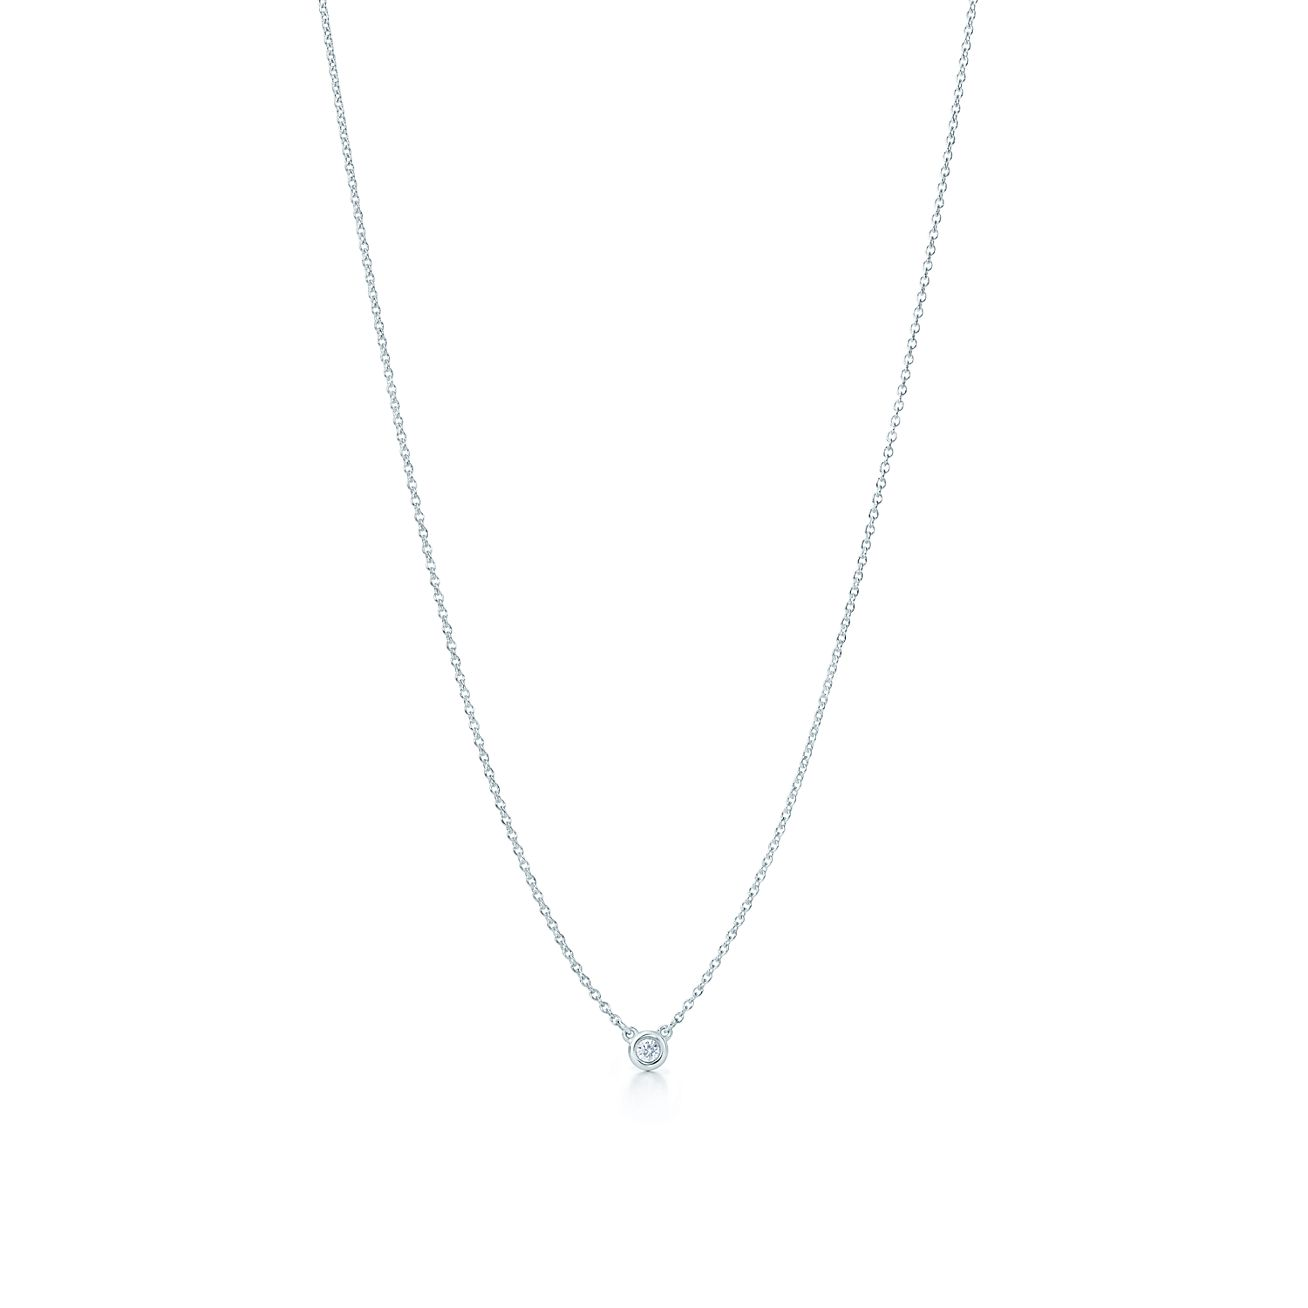 Diamond pendant necklace in sterling silver elsa peretti elsa perettidiamonds by the yard pendant mozeypictures Image collections